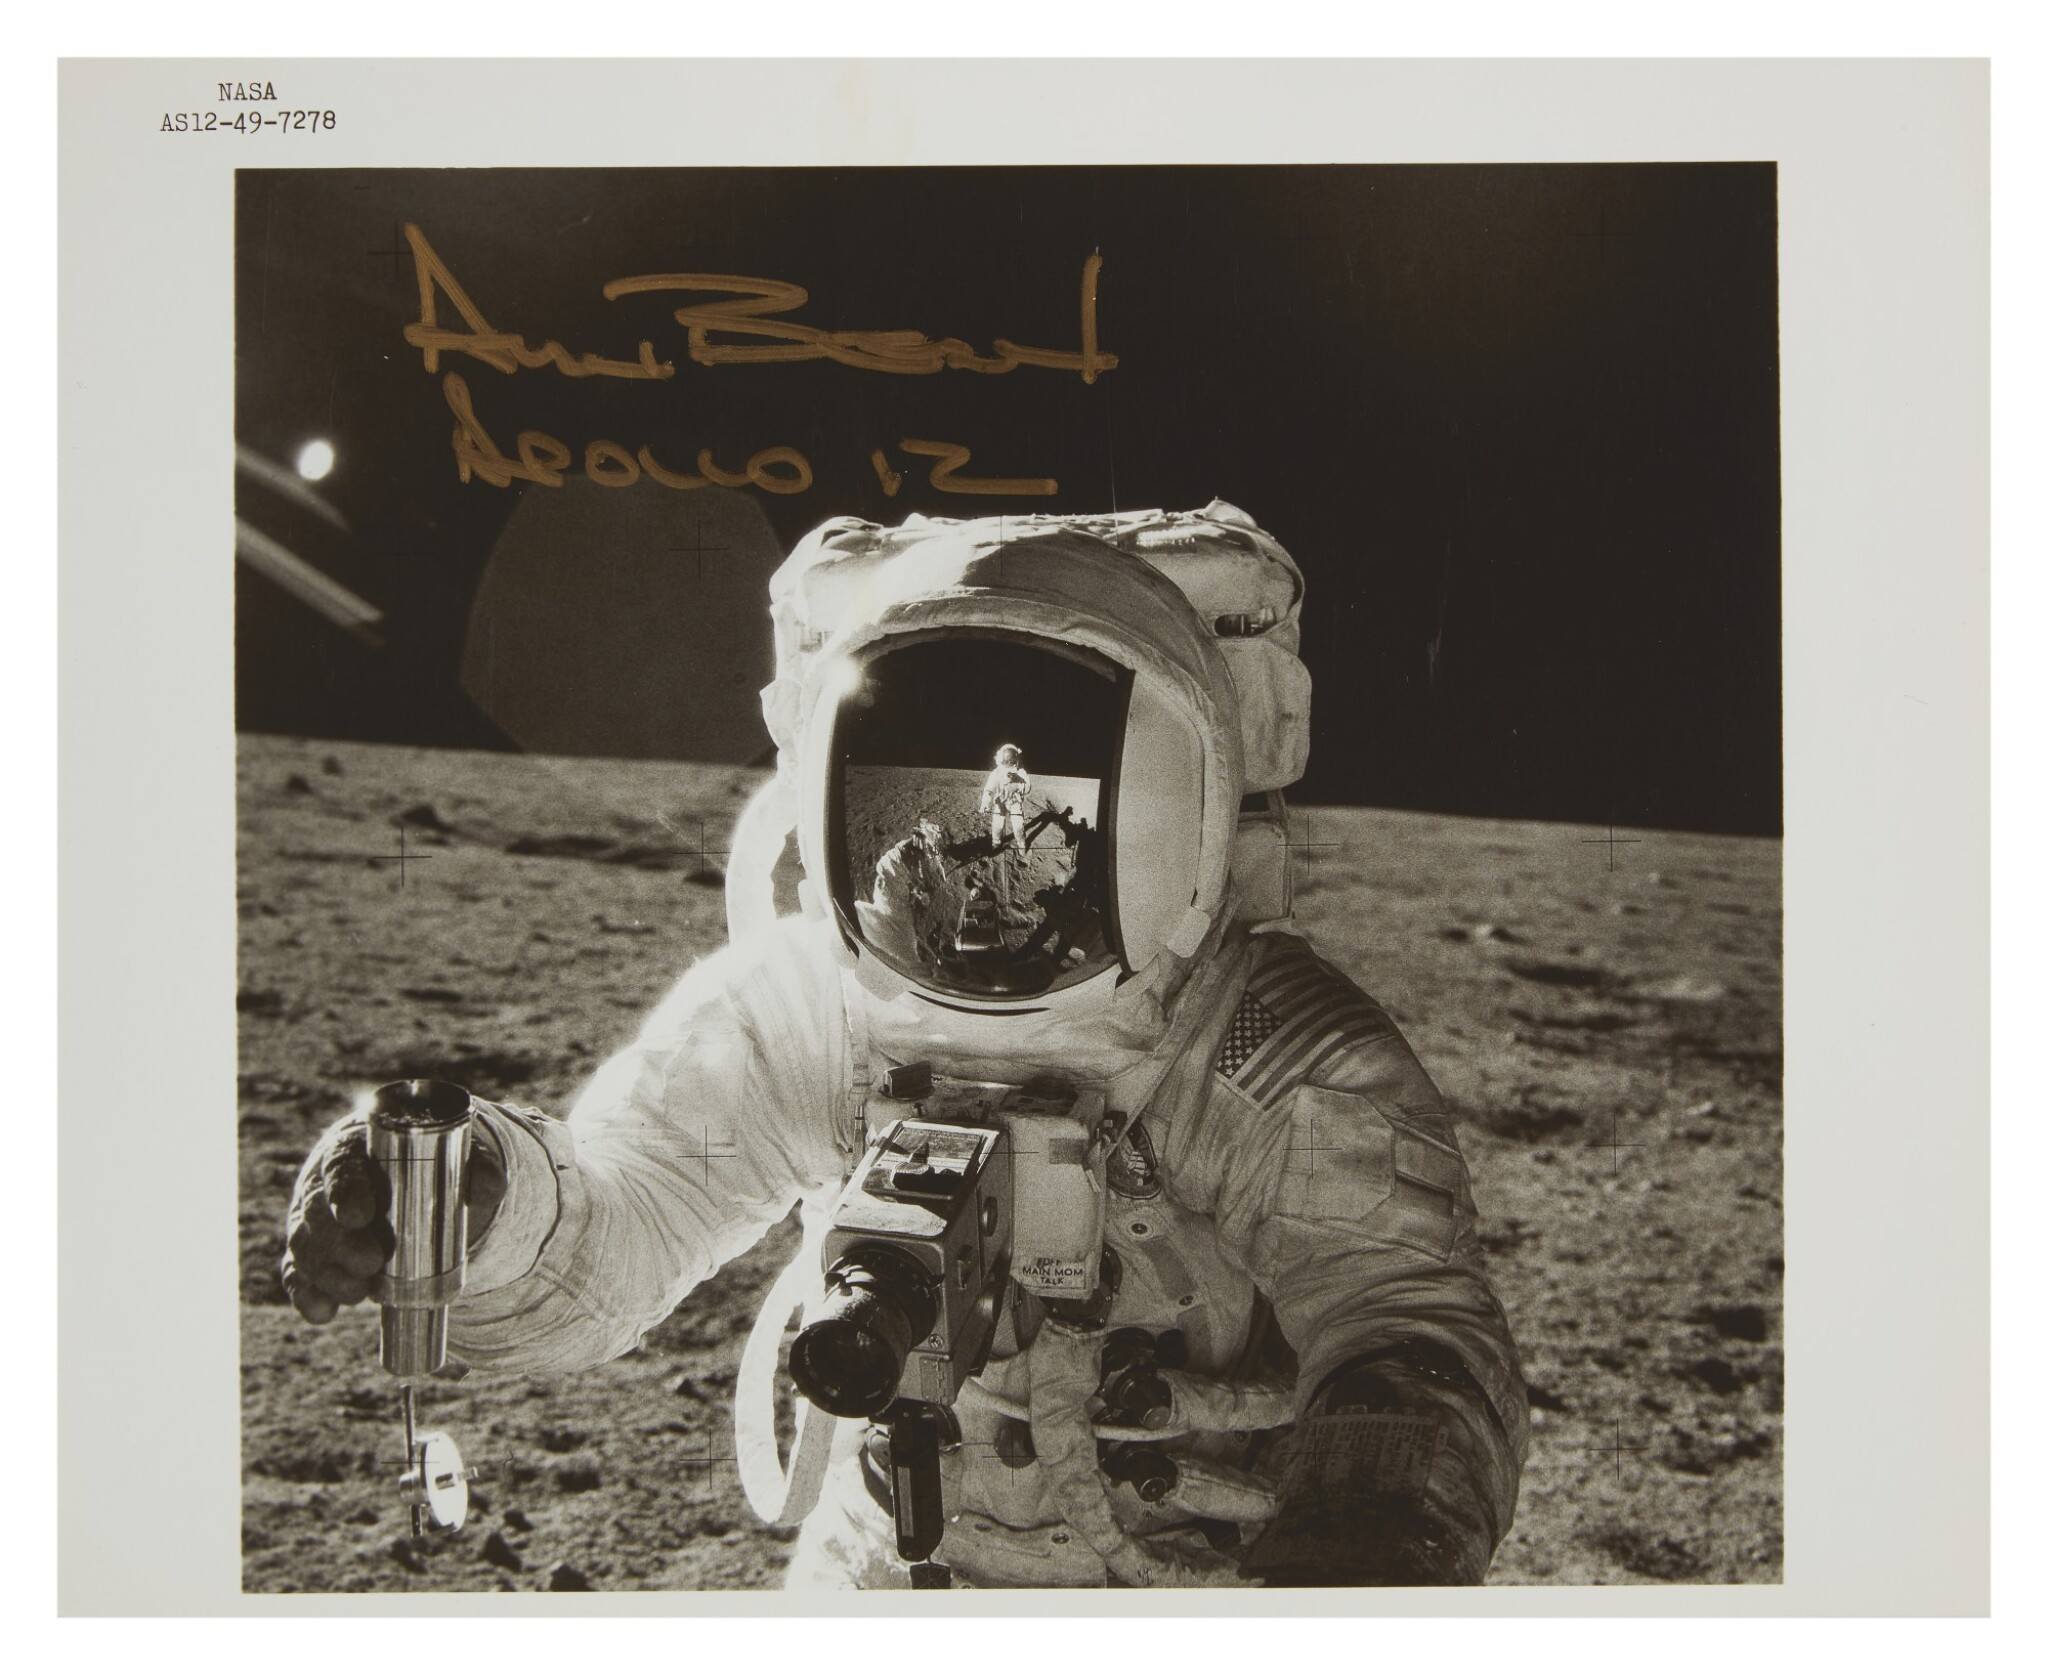 "[APOLLO 12] COLLECTING LUNAR SAMPLES, INSCRIBED BY BEAN. VINTAGE NASA ""BLACK NUMBER"" PHOTOGRAPH, 19-20 NOVEMBER 1969."